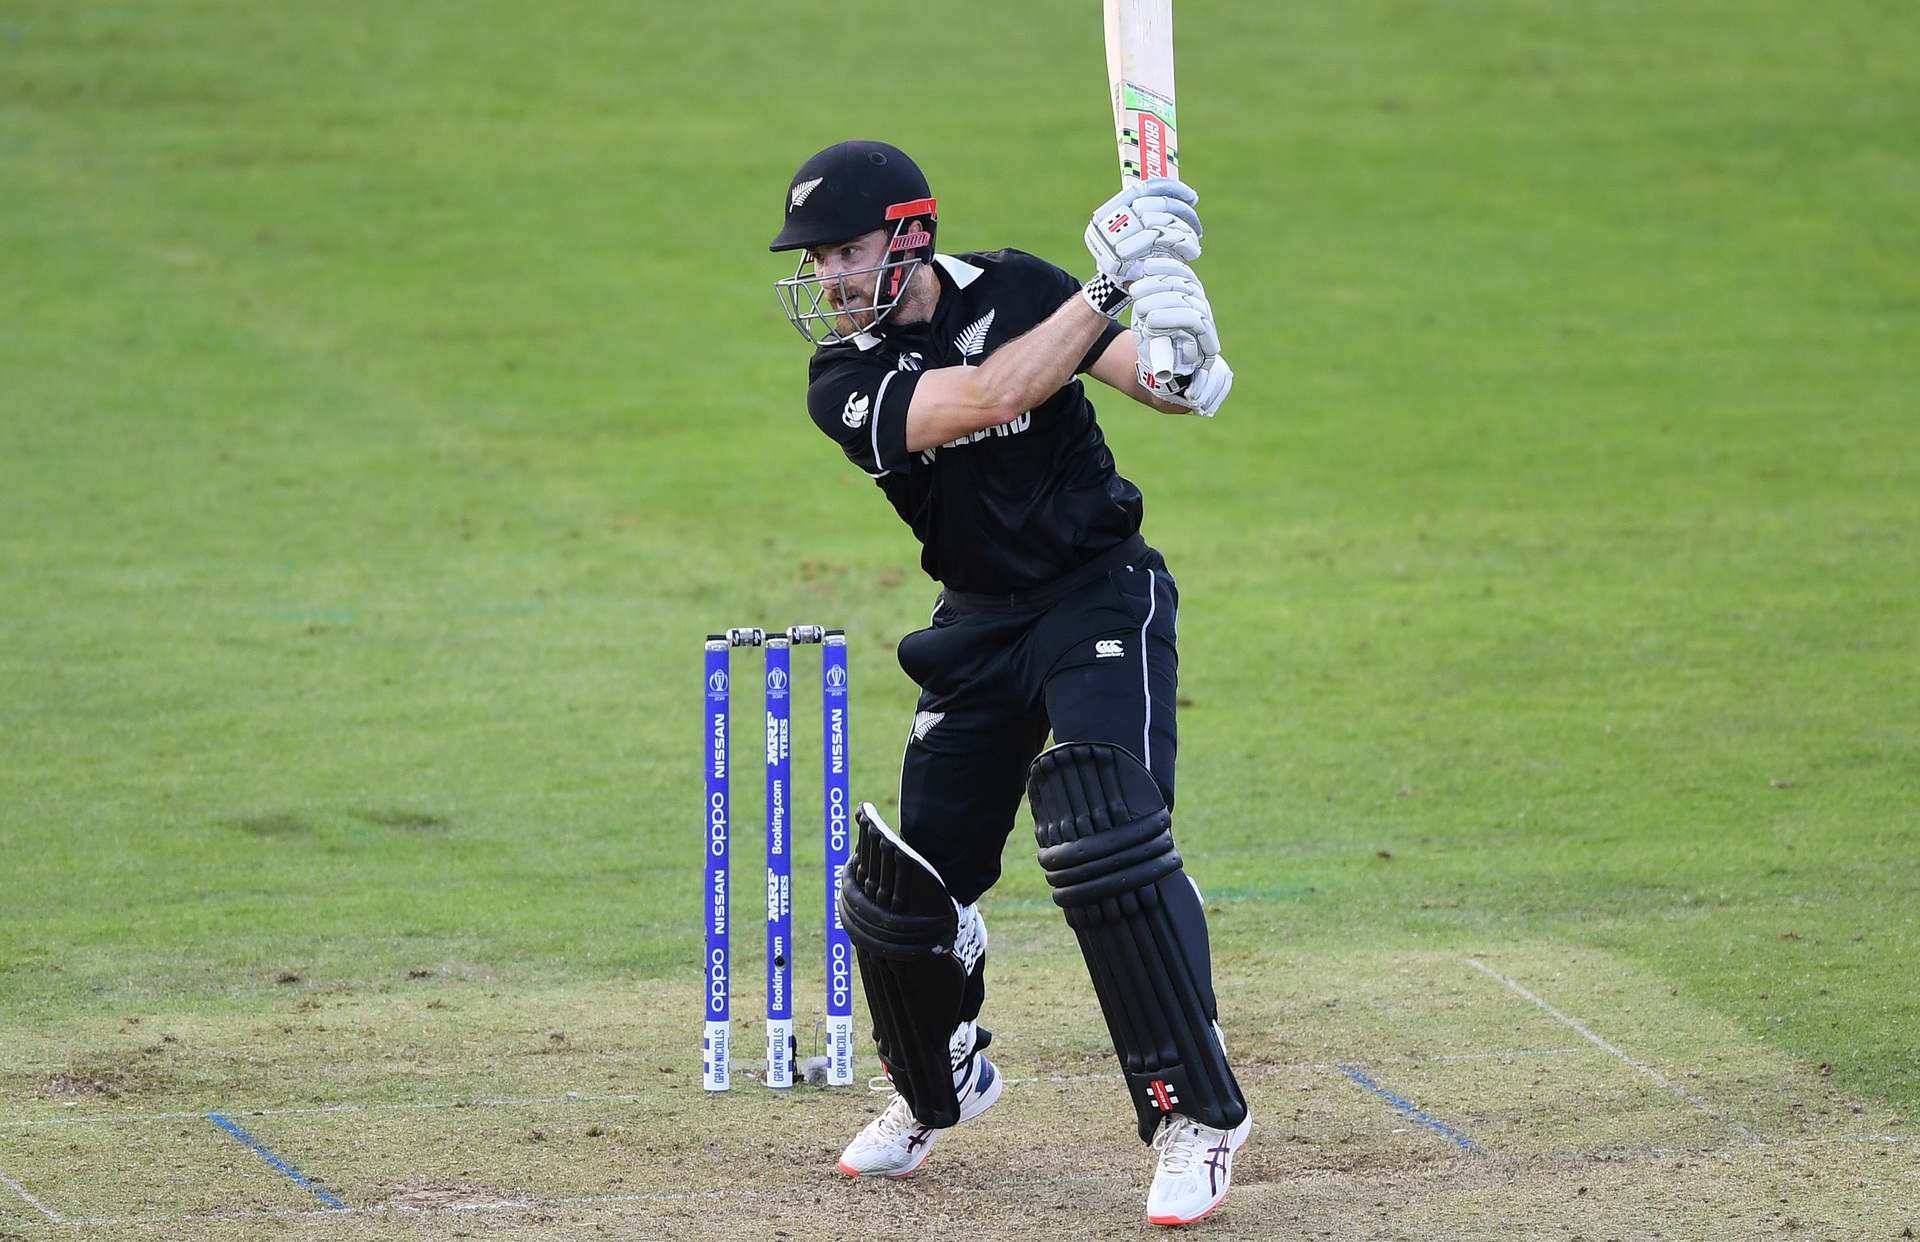 2019 Cricket World Cup live commentary and updates: Black Caps v